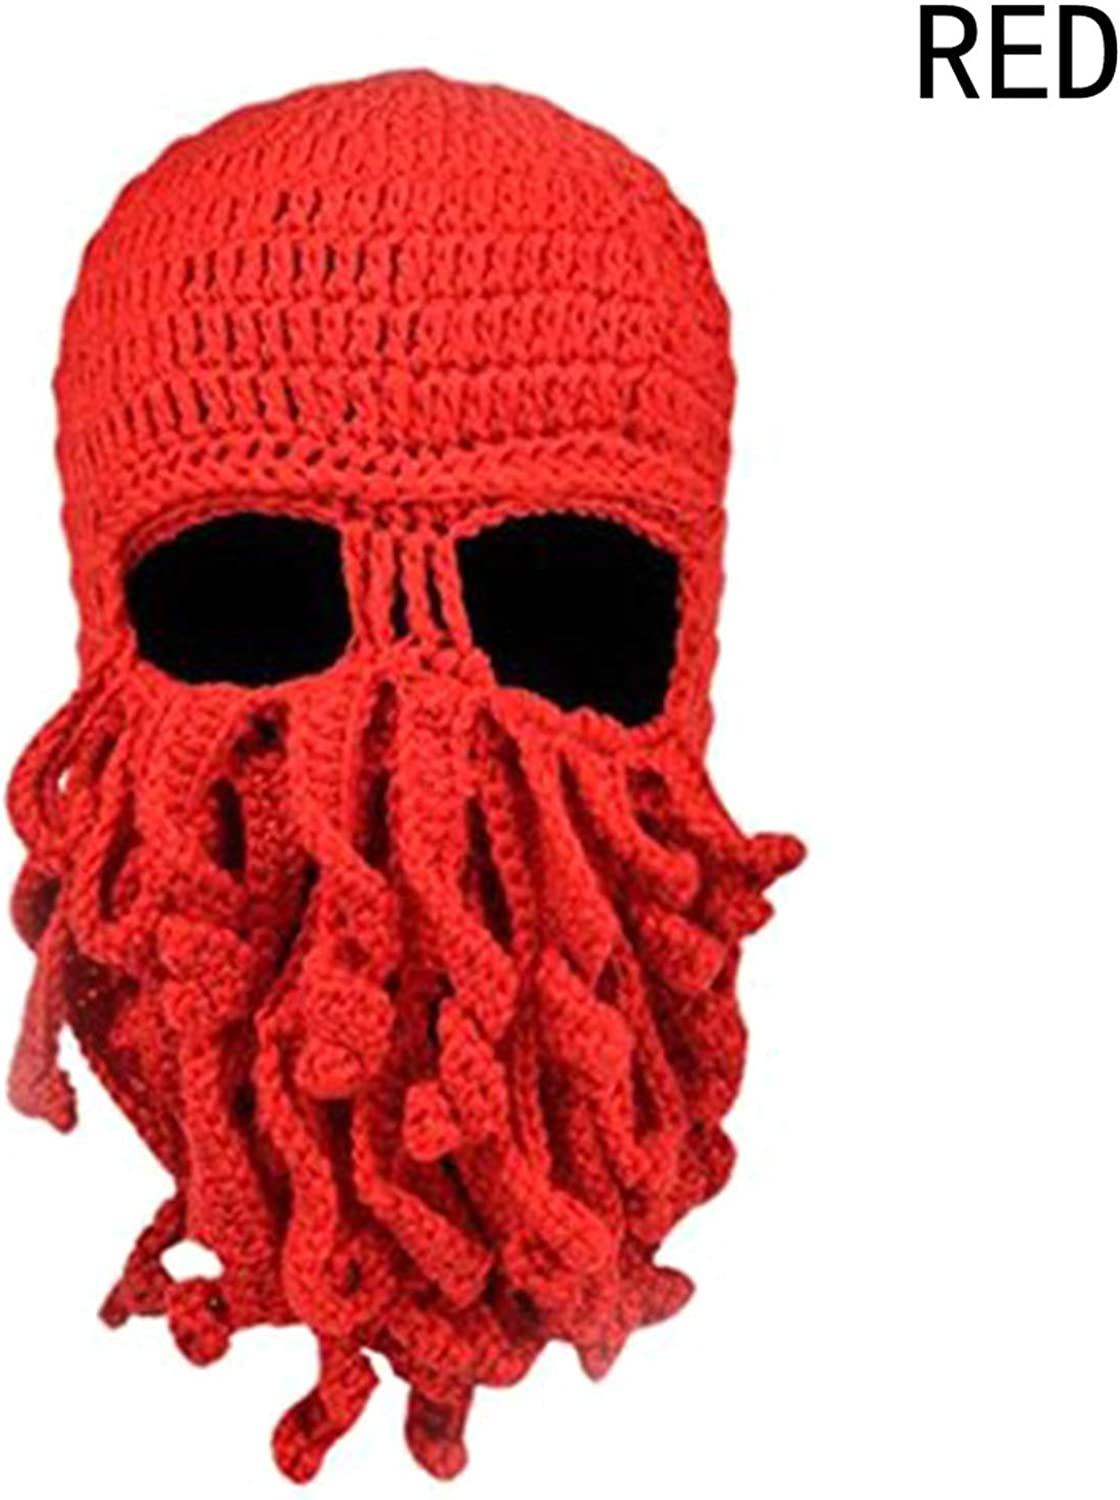 New Creative Unisex Winter Warm Knitted Wool Beanies Face Mask Hats Squid Cap Cthulhu Tentacles Beanie Hat